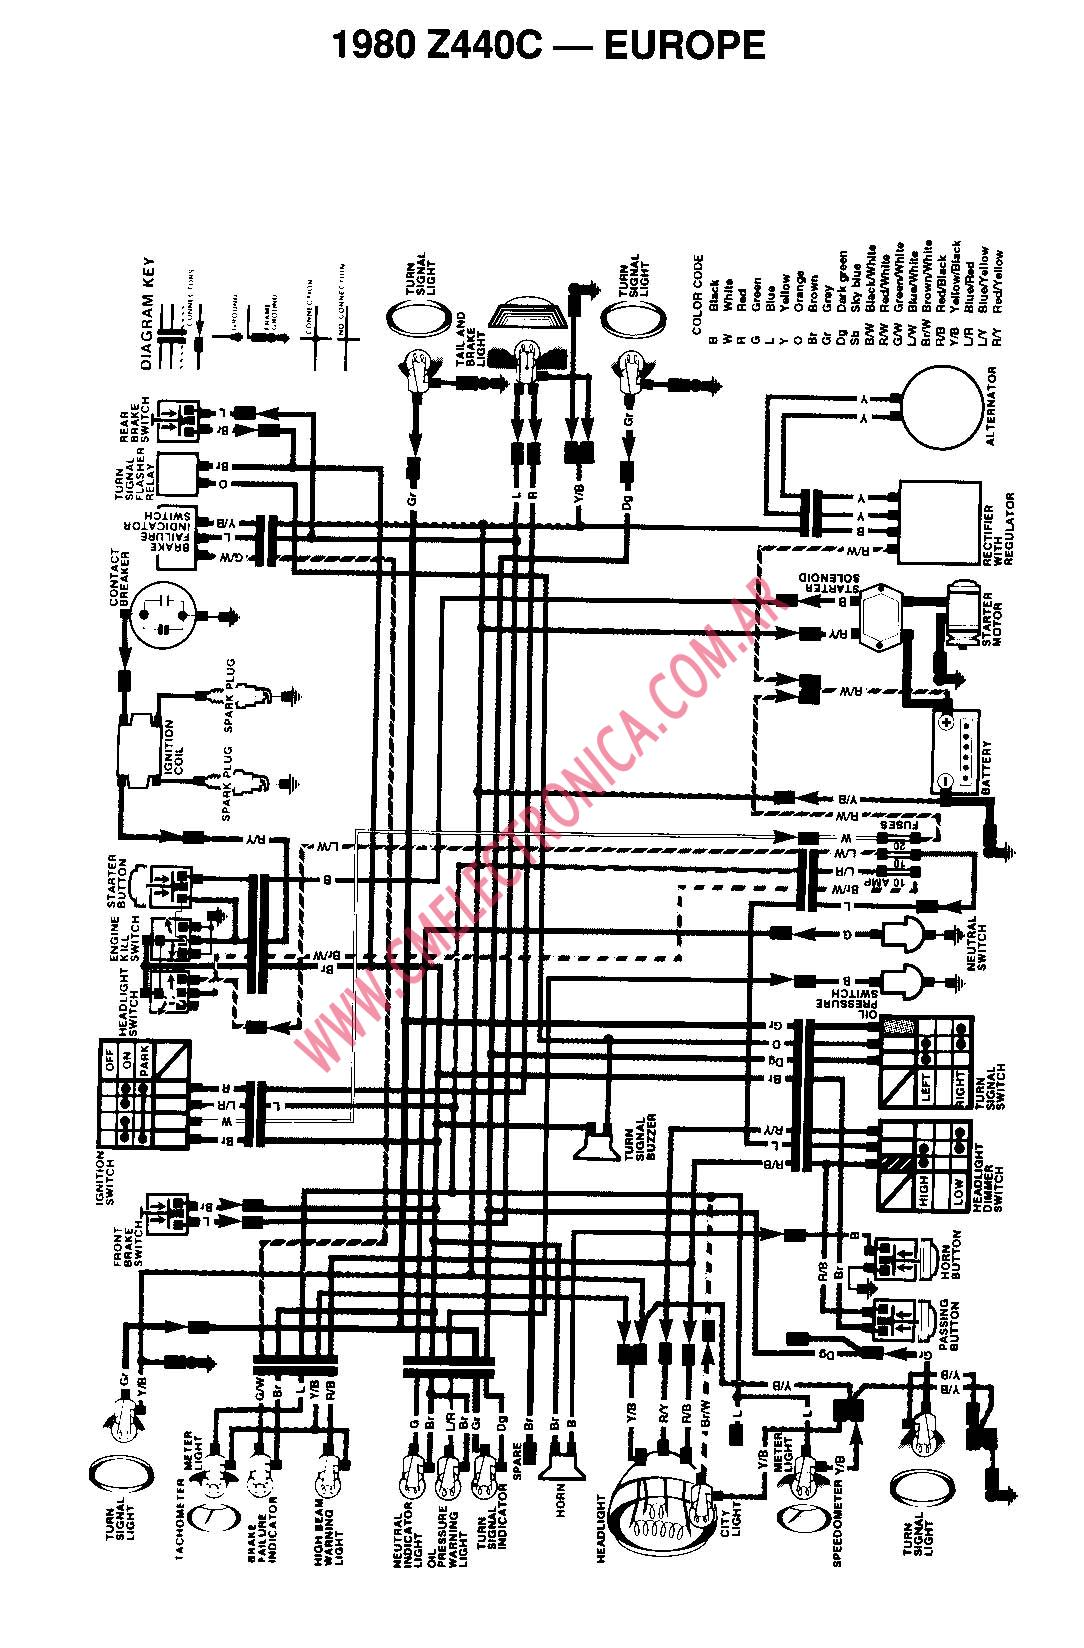 Kawasaki Klf300b Wiring Diagram Wherr Is The Reverse Switch